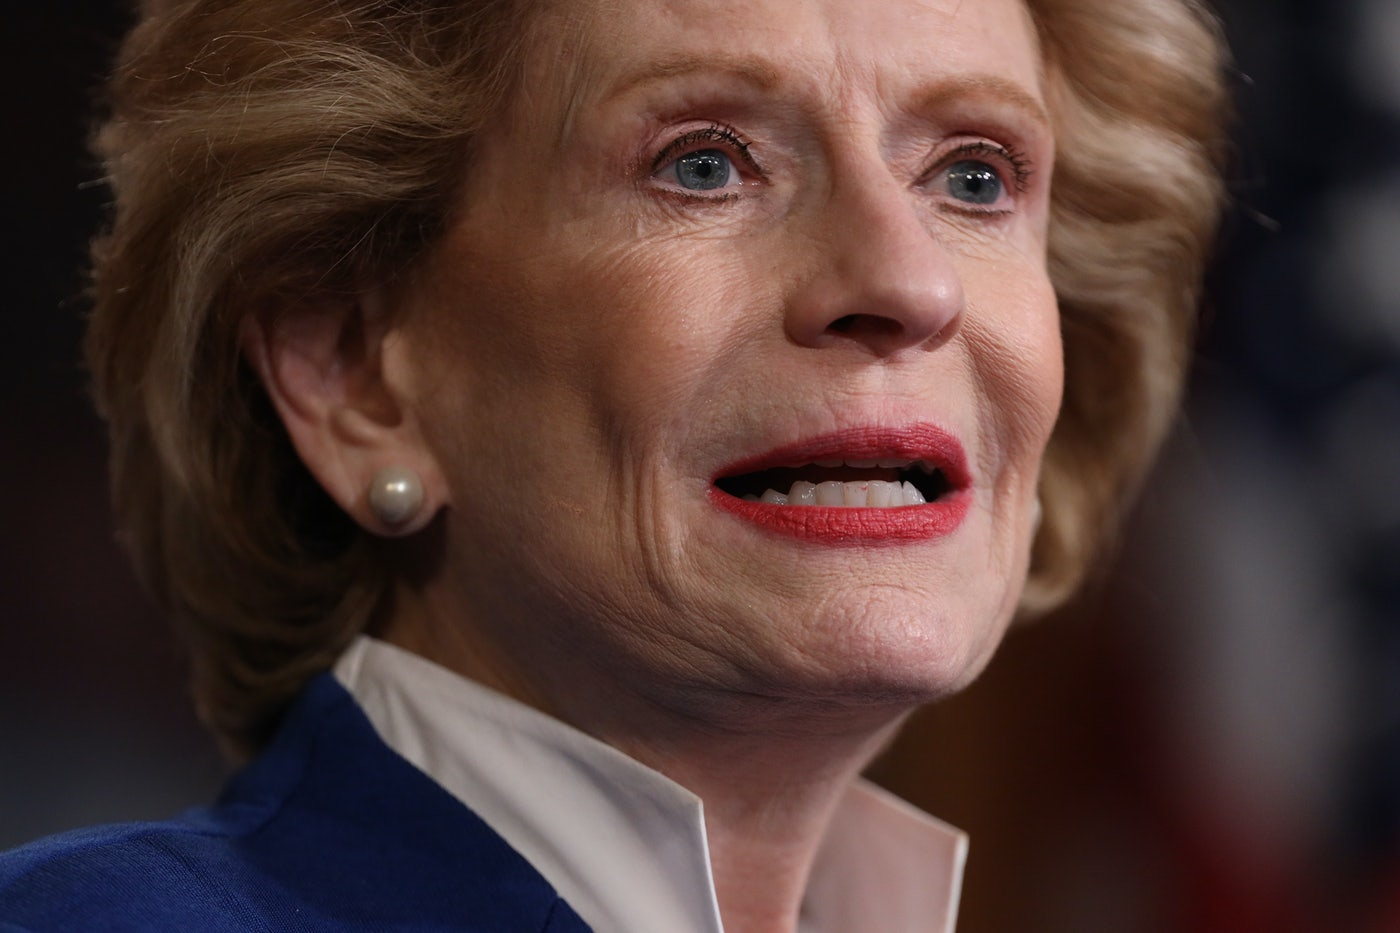 Senator Debbie Stabenow of Michigan speaks.